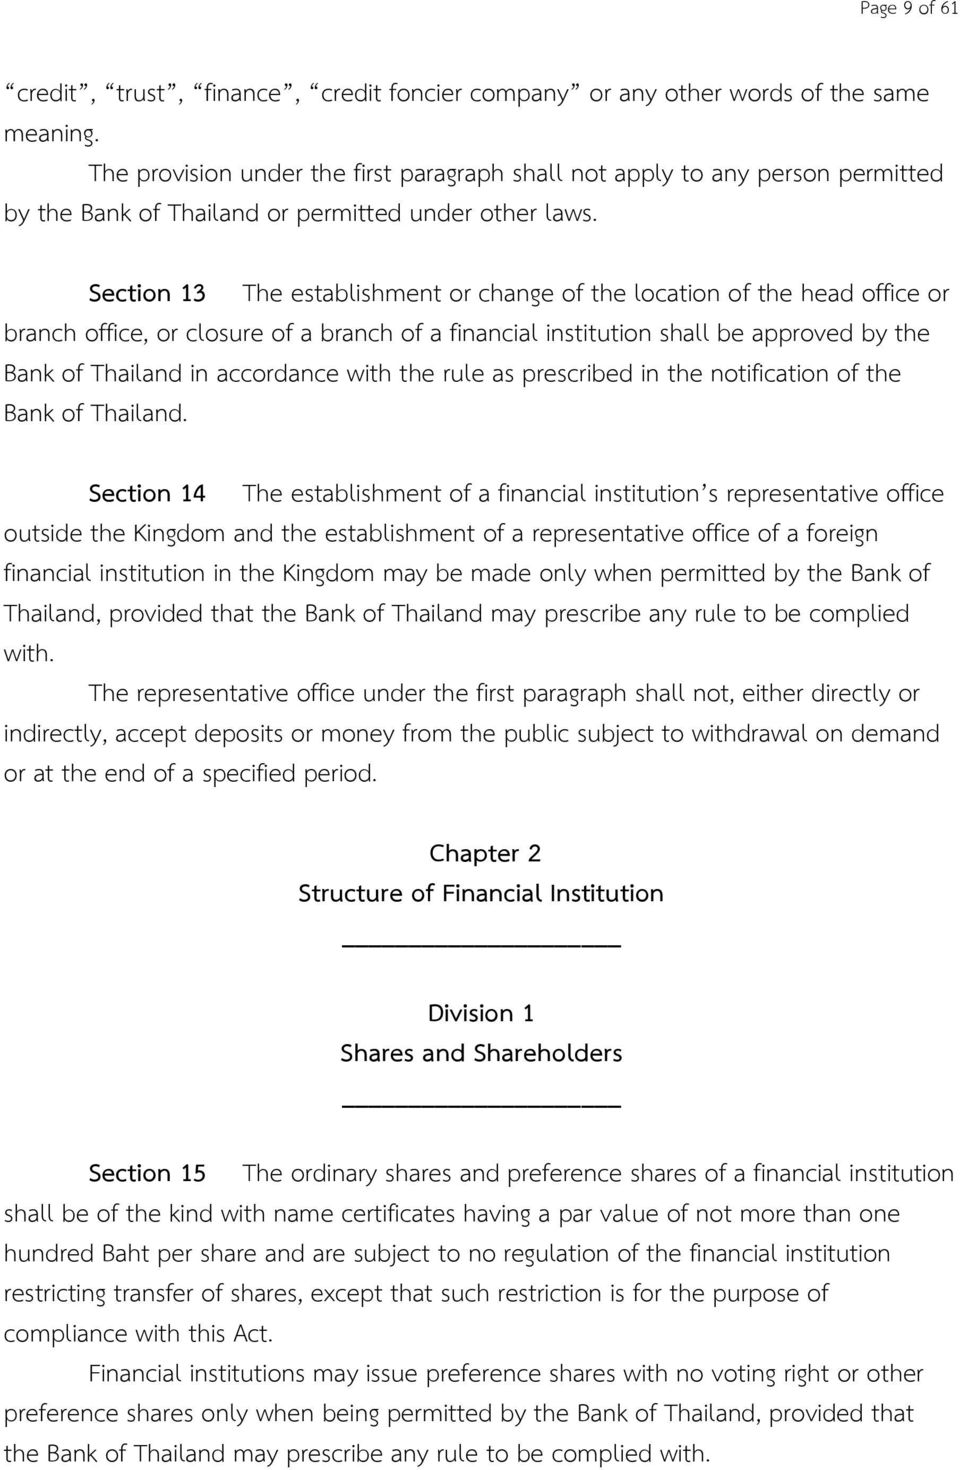 Section 13 The establishment or change of the location of the head office or branch office, or closure of a branch of a financial institution shall be approved by the Bank of Thailand in accordance